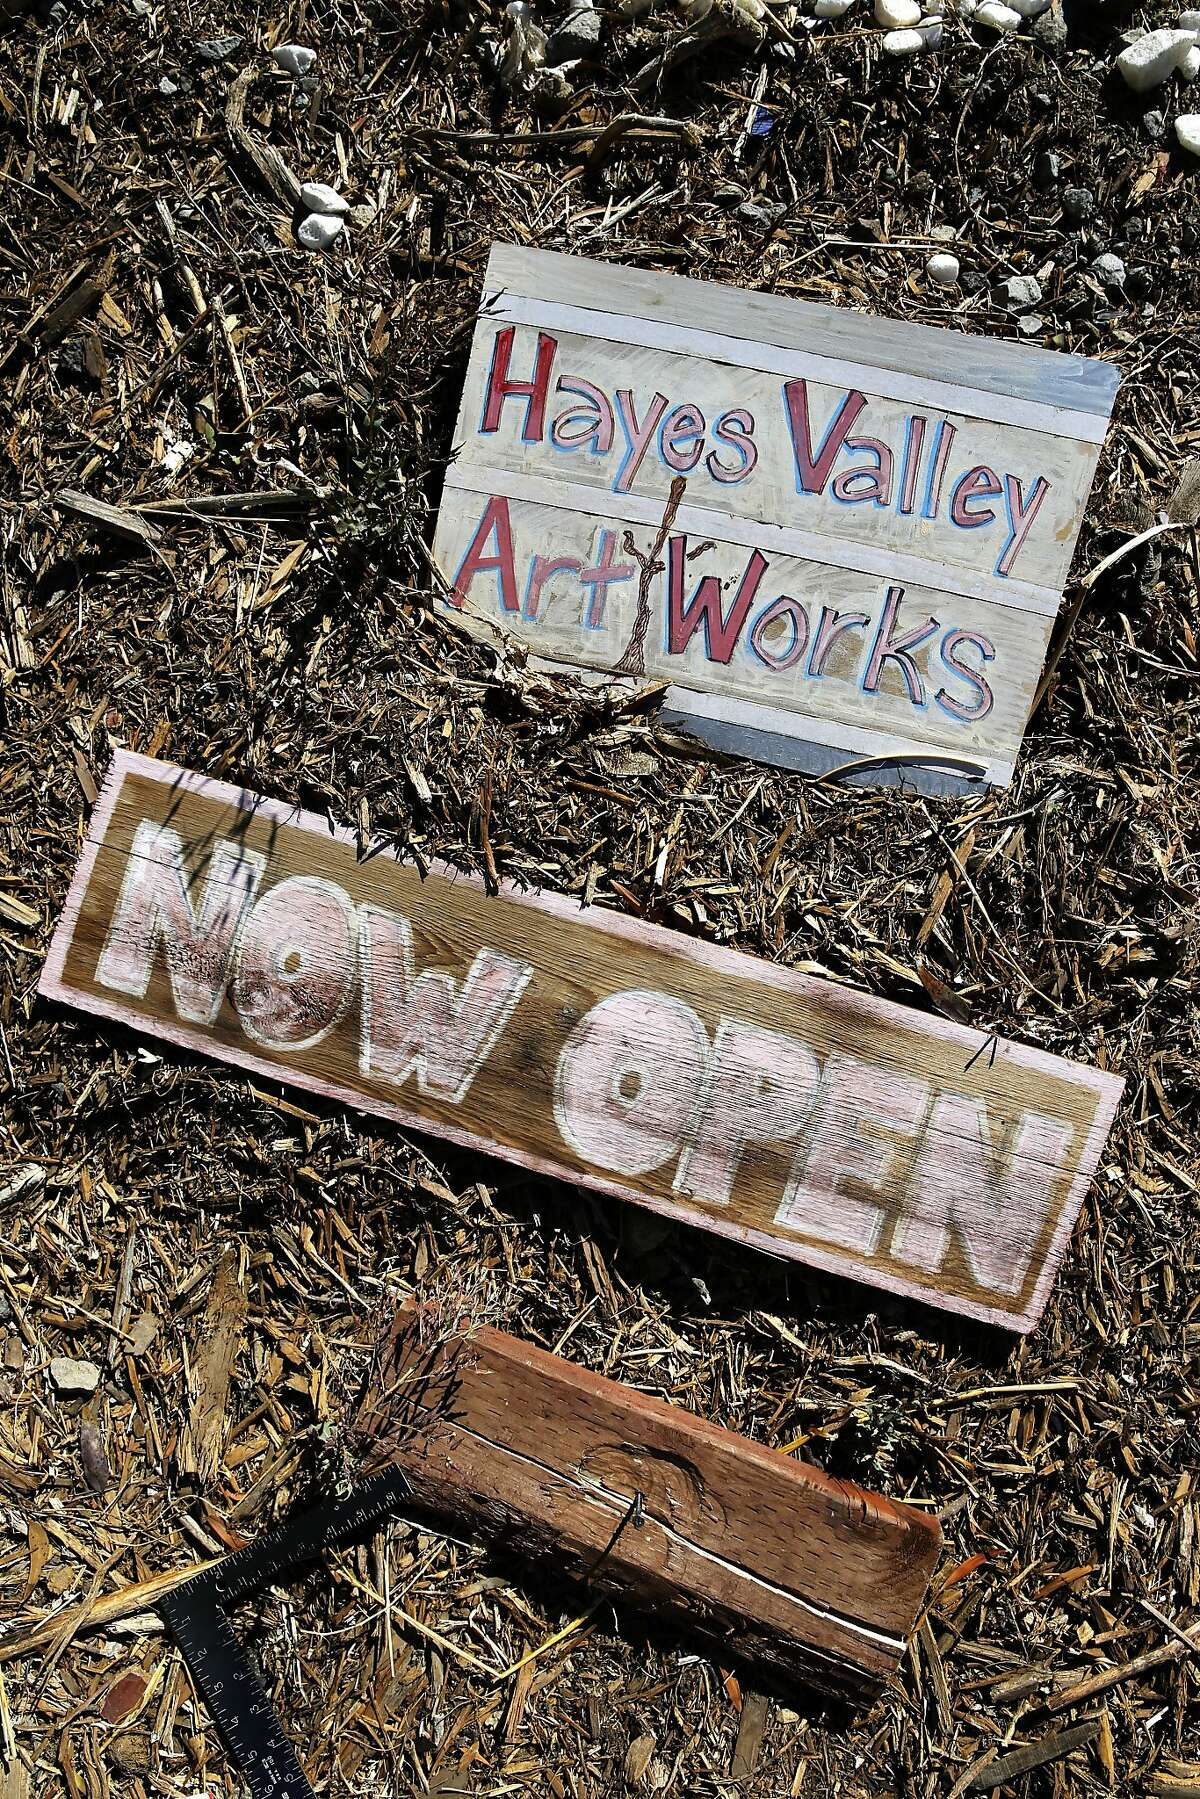 Signs will soon be put into place to inform passerby of the Hayes Valley Art Works, an art activation site where the Fell St. offramp used to be near Octavia, in San Francisco, California, as seen on Sat. July 30, 2016.